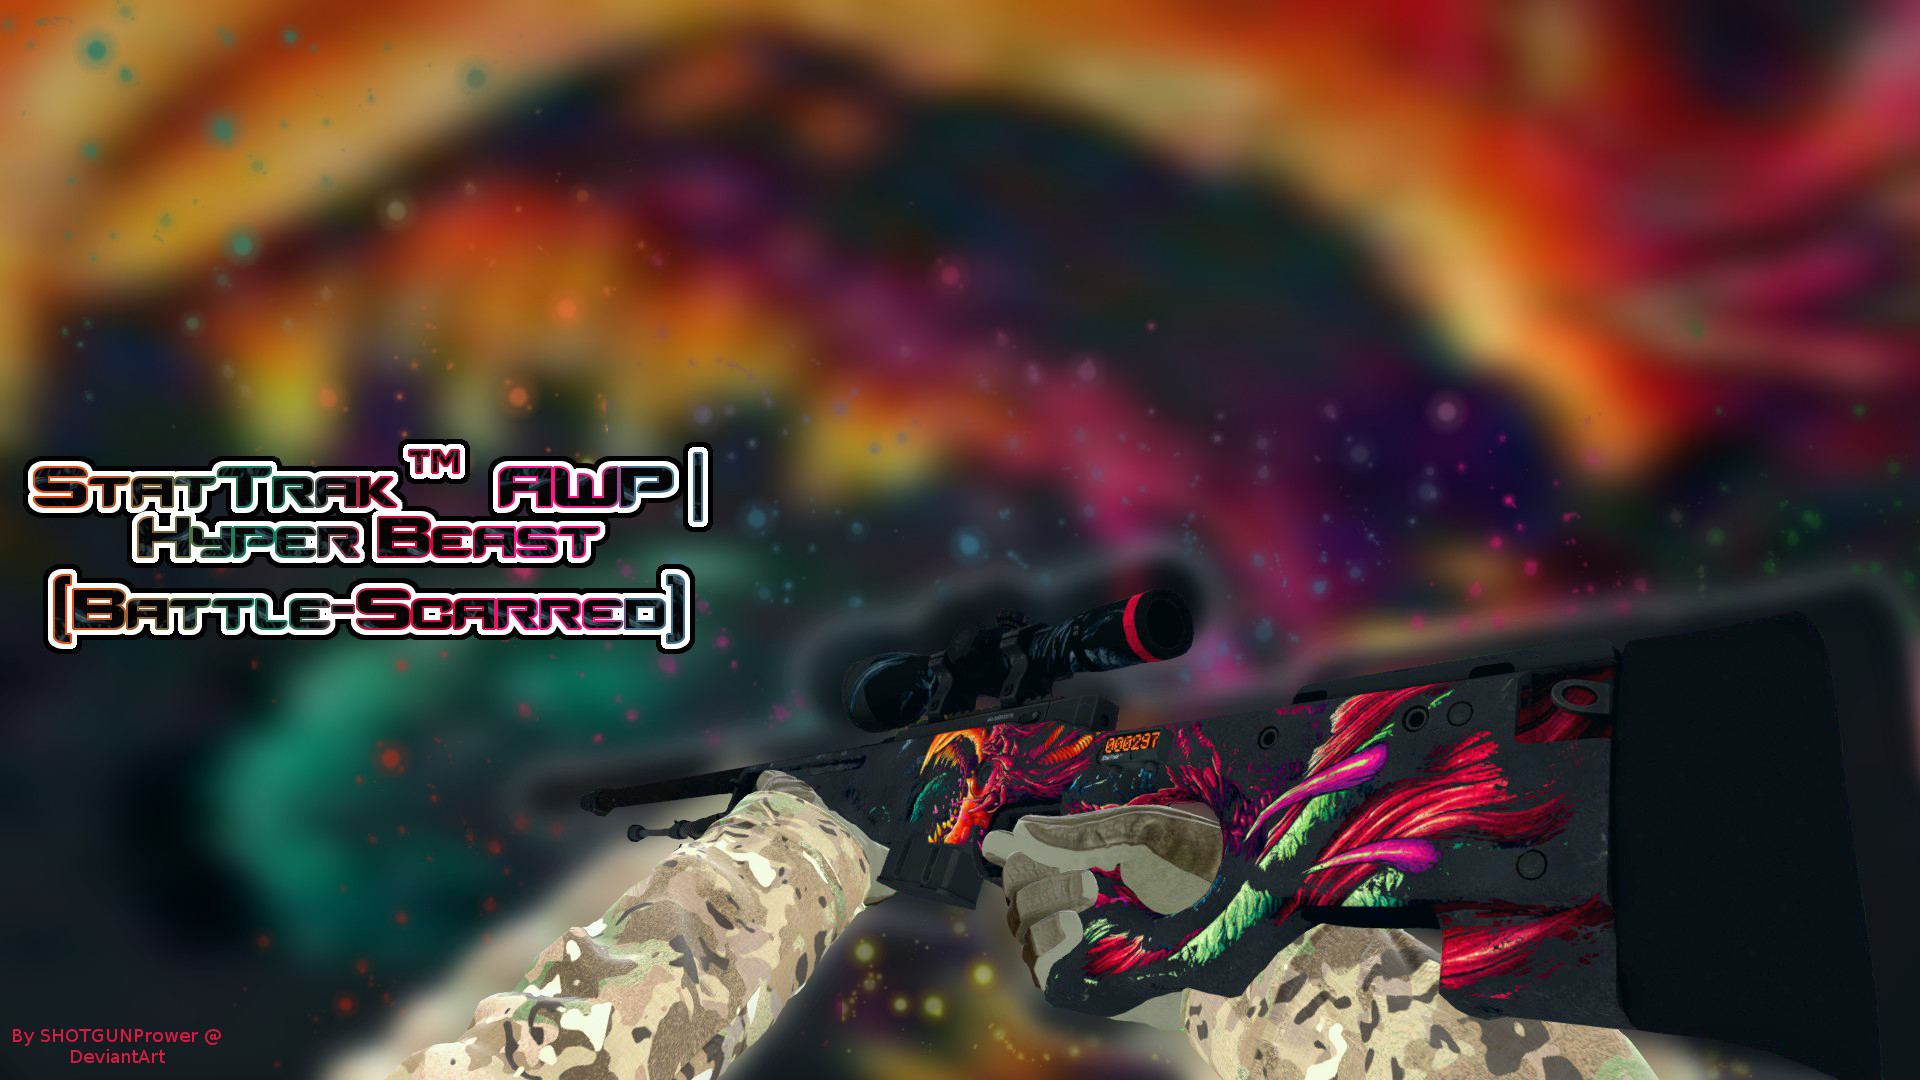 1920x1080 StatTrak AWP Hyper Beast Battle Scarred by SHOTGUNPrower on